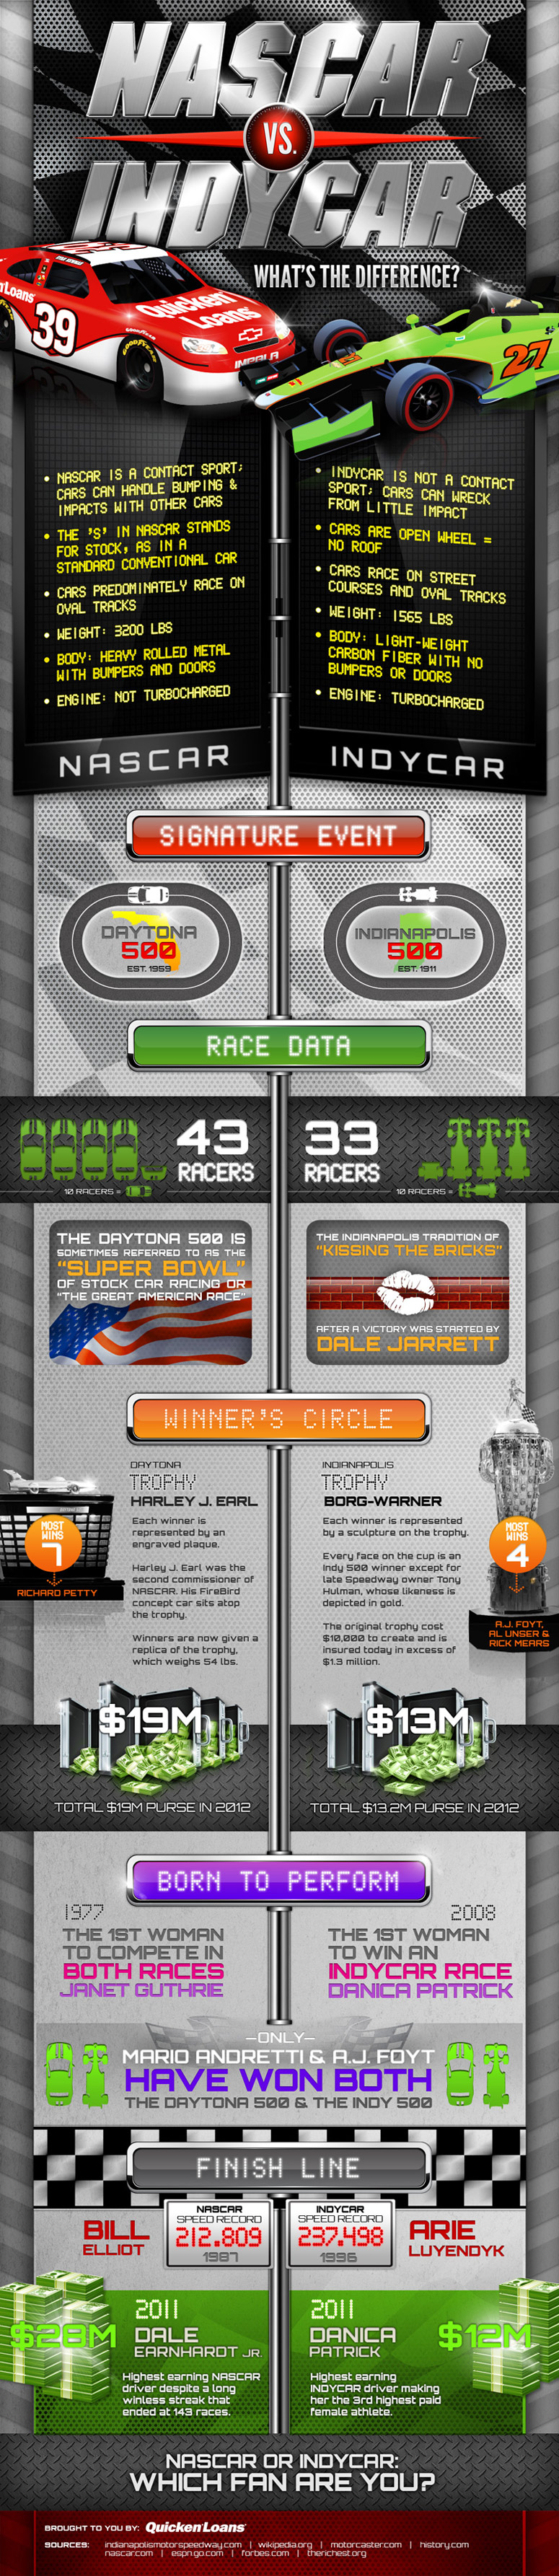 nascar-vs-indycar-whats-the-difference--quicken-loans-racing_5037b4b13cd2d